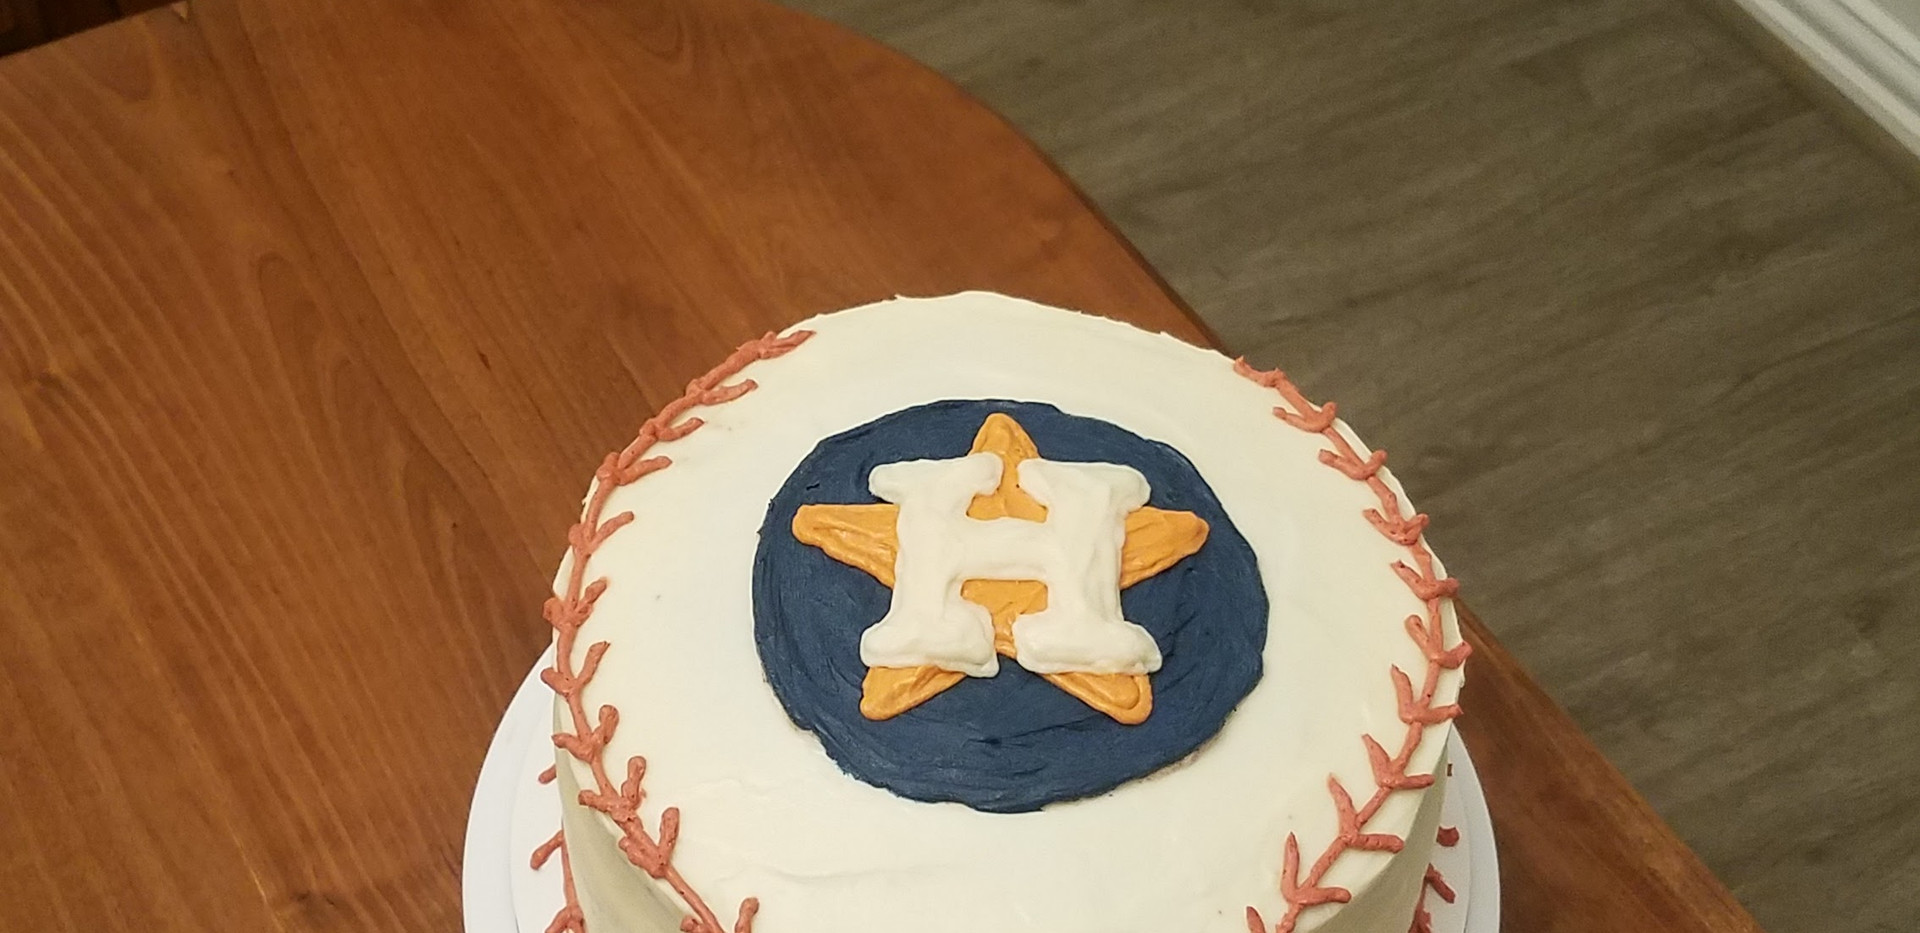 Astros Cake- Red Velvet with Cream Cheese Icing